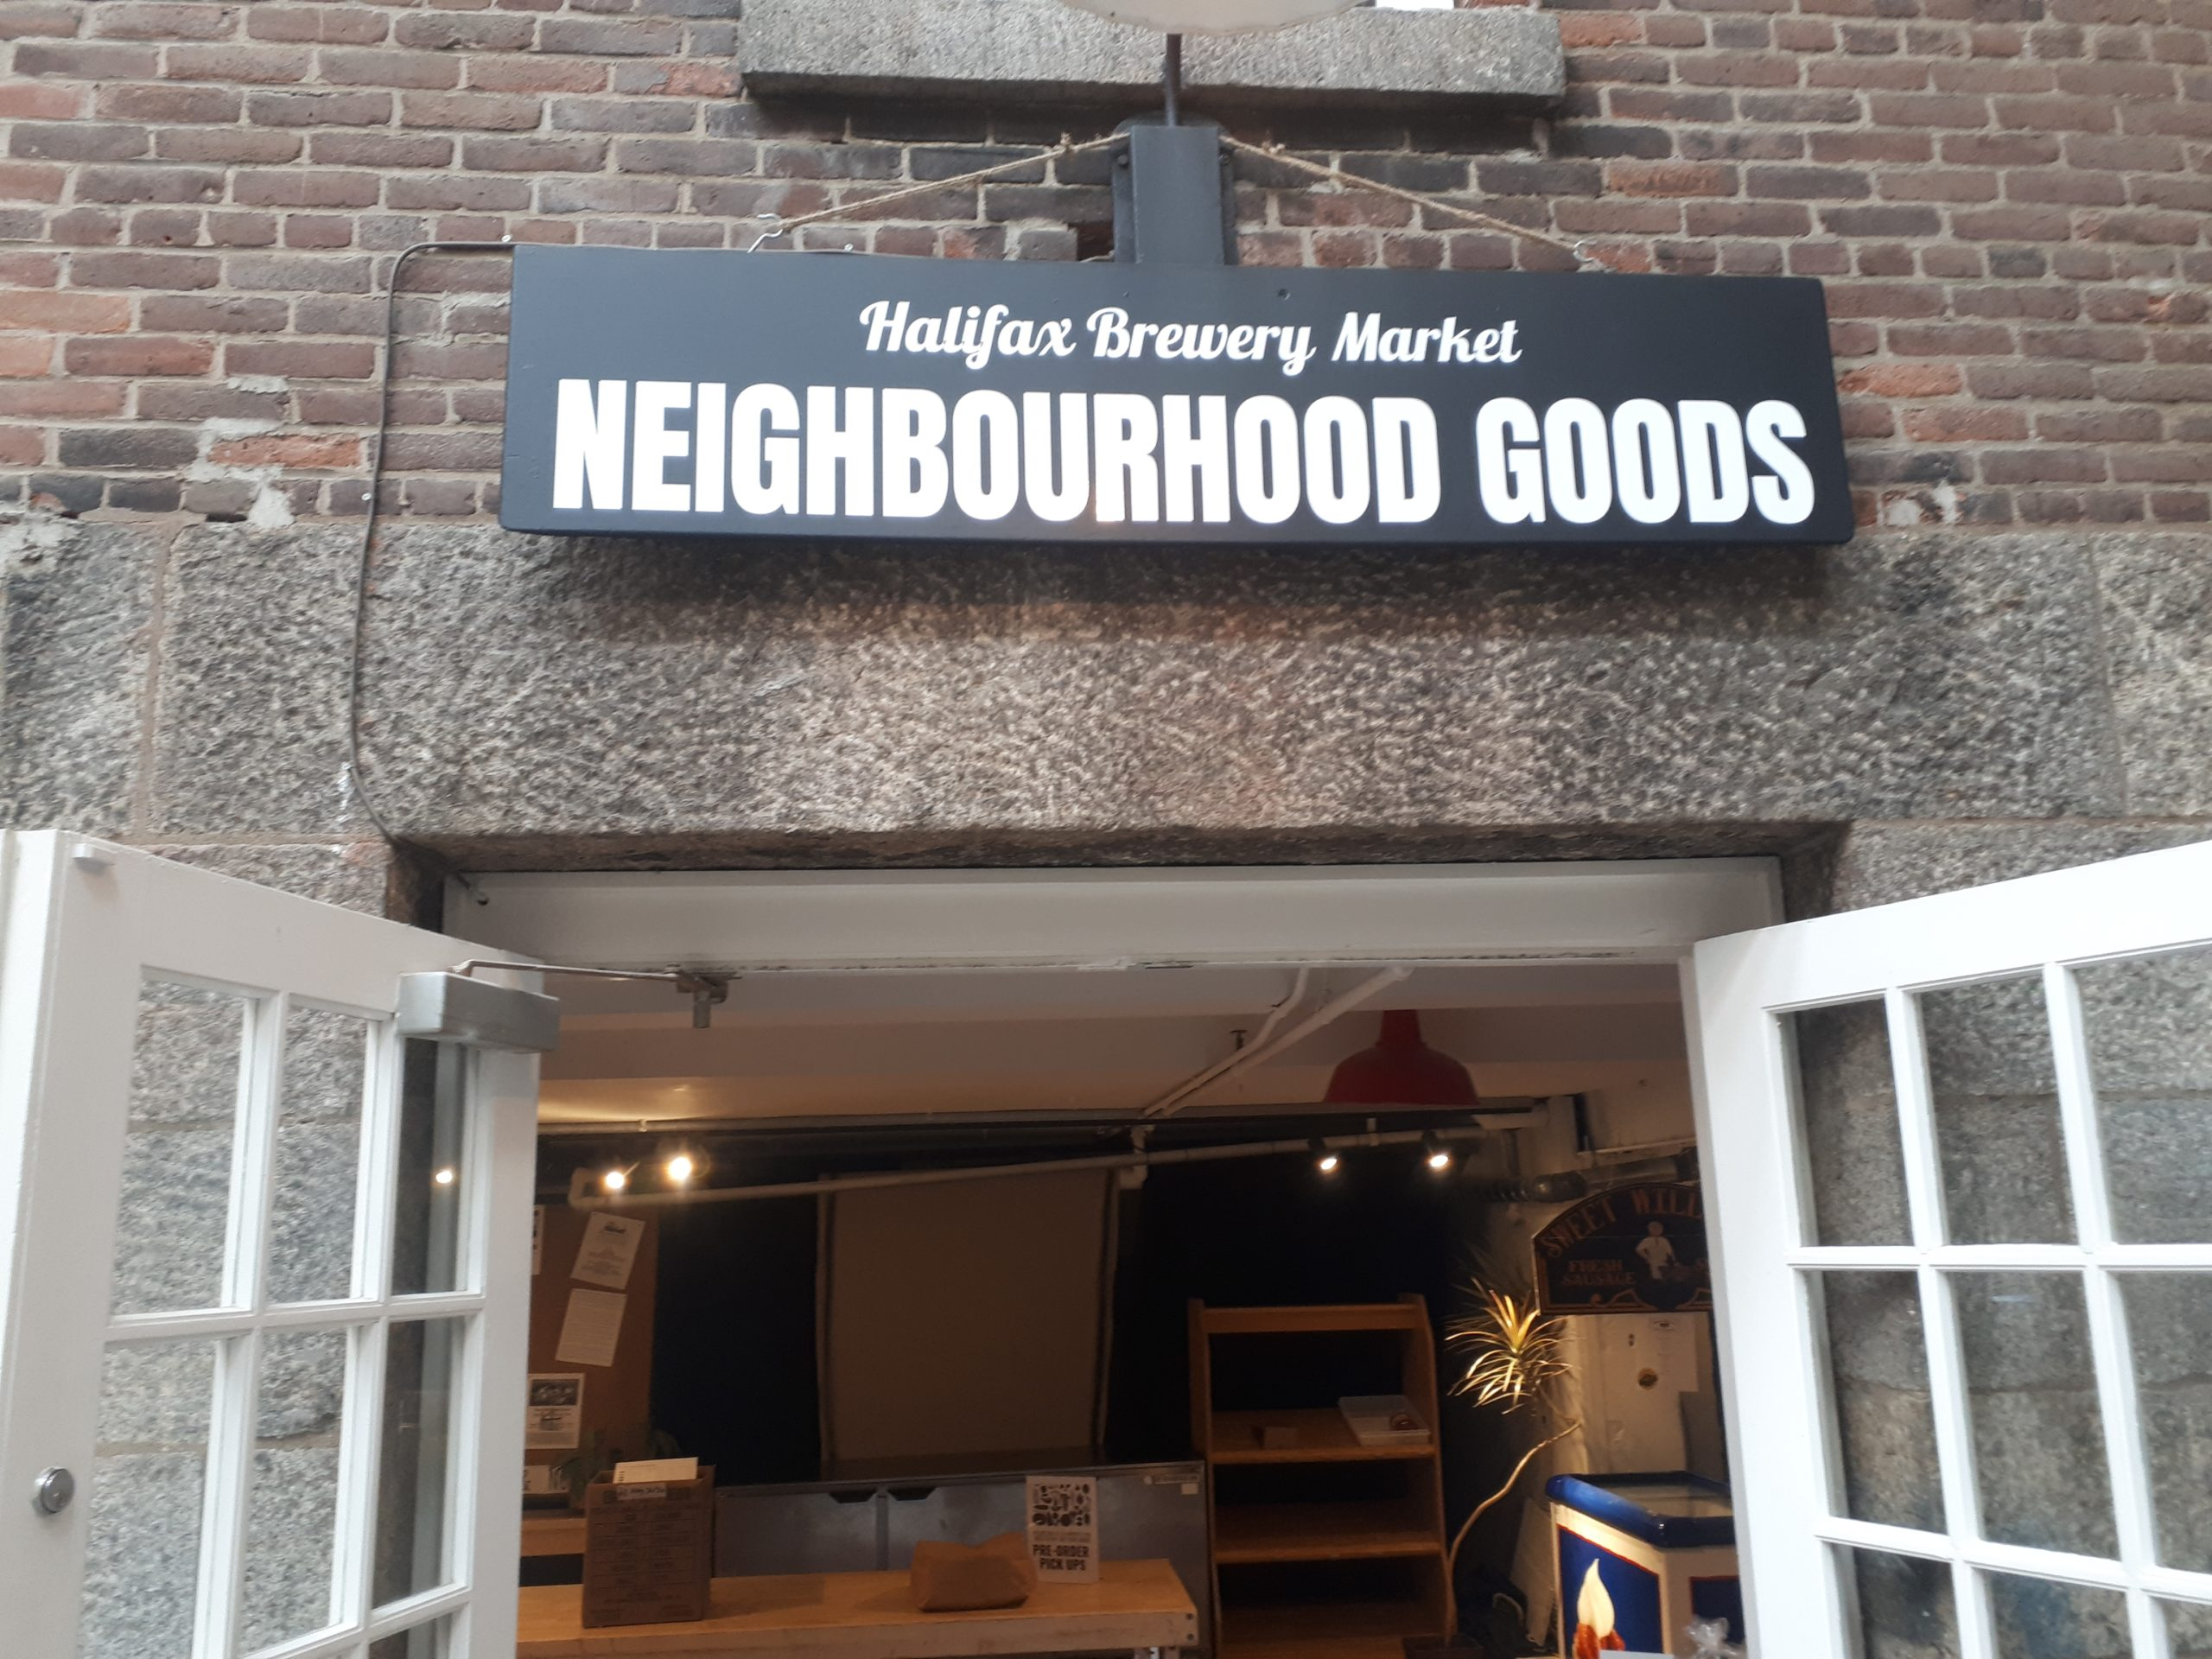 Entrance to the Neighbourhood Goods store at the Halifax Brewery Market